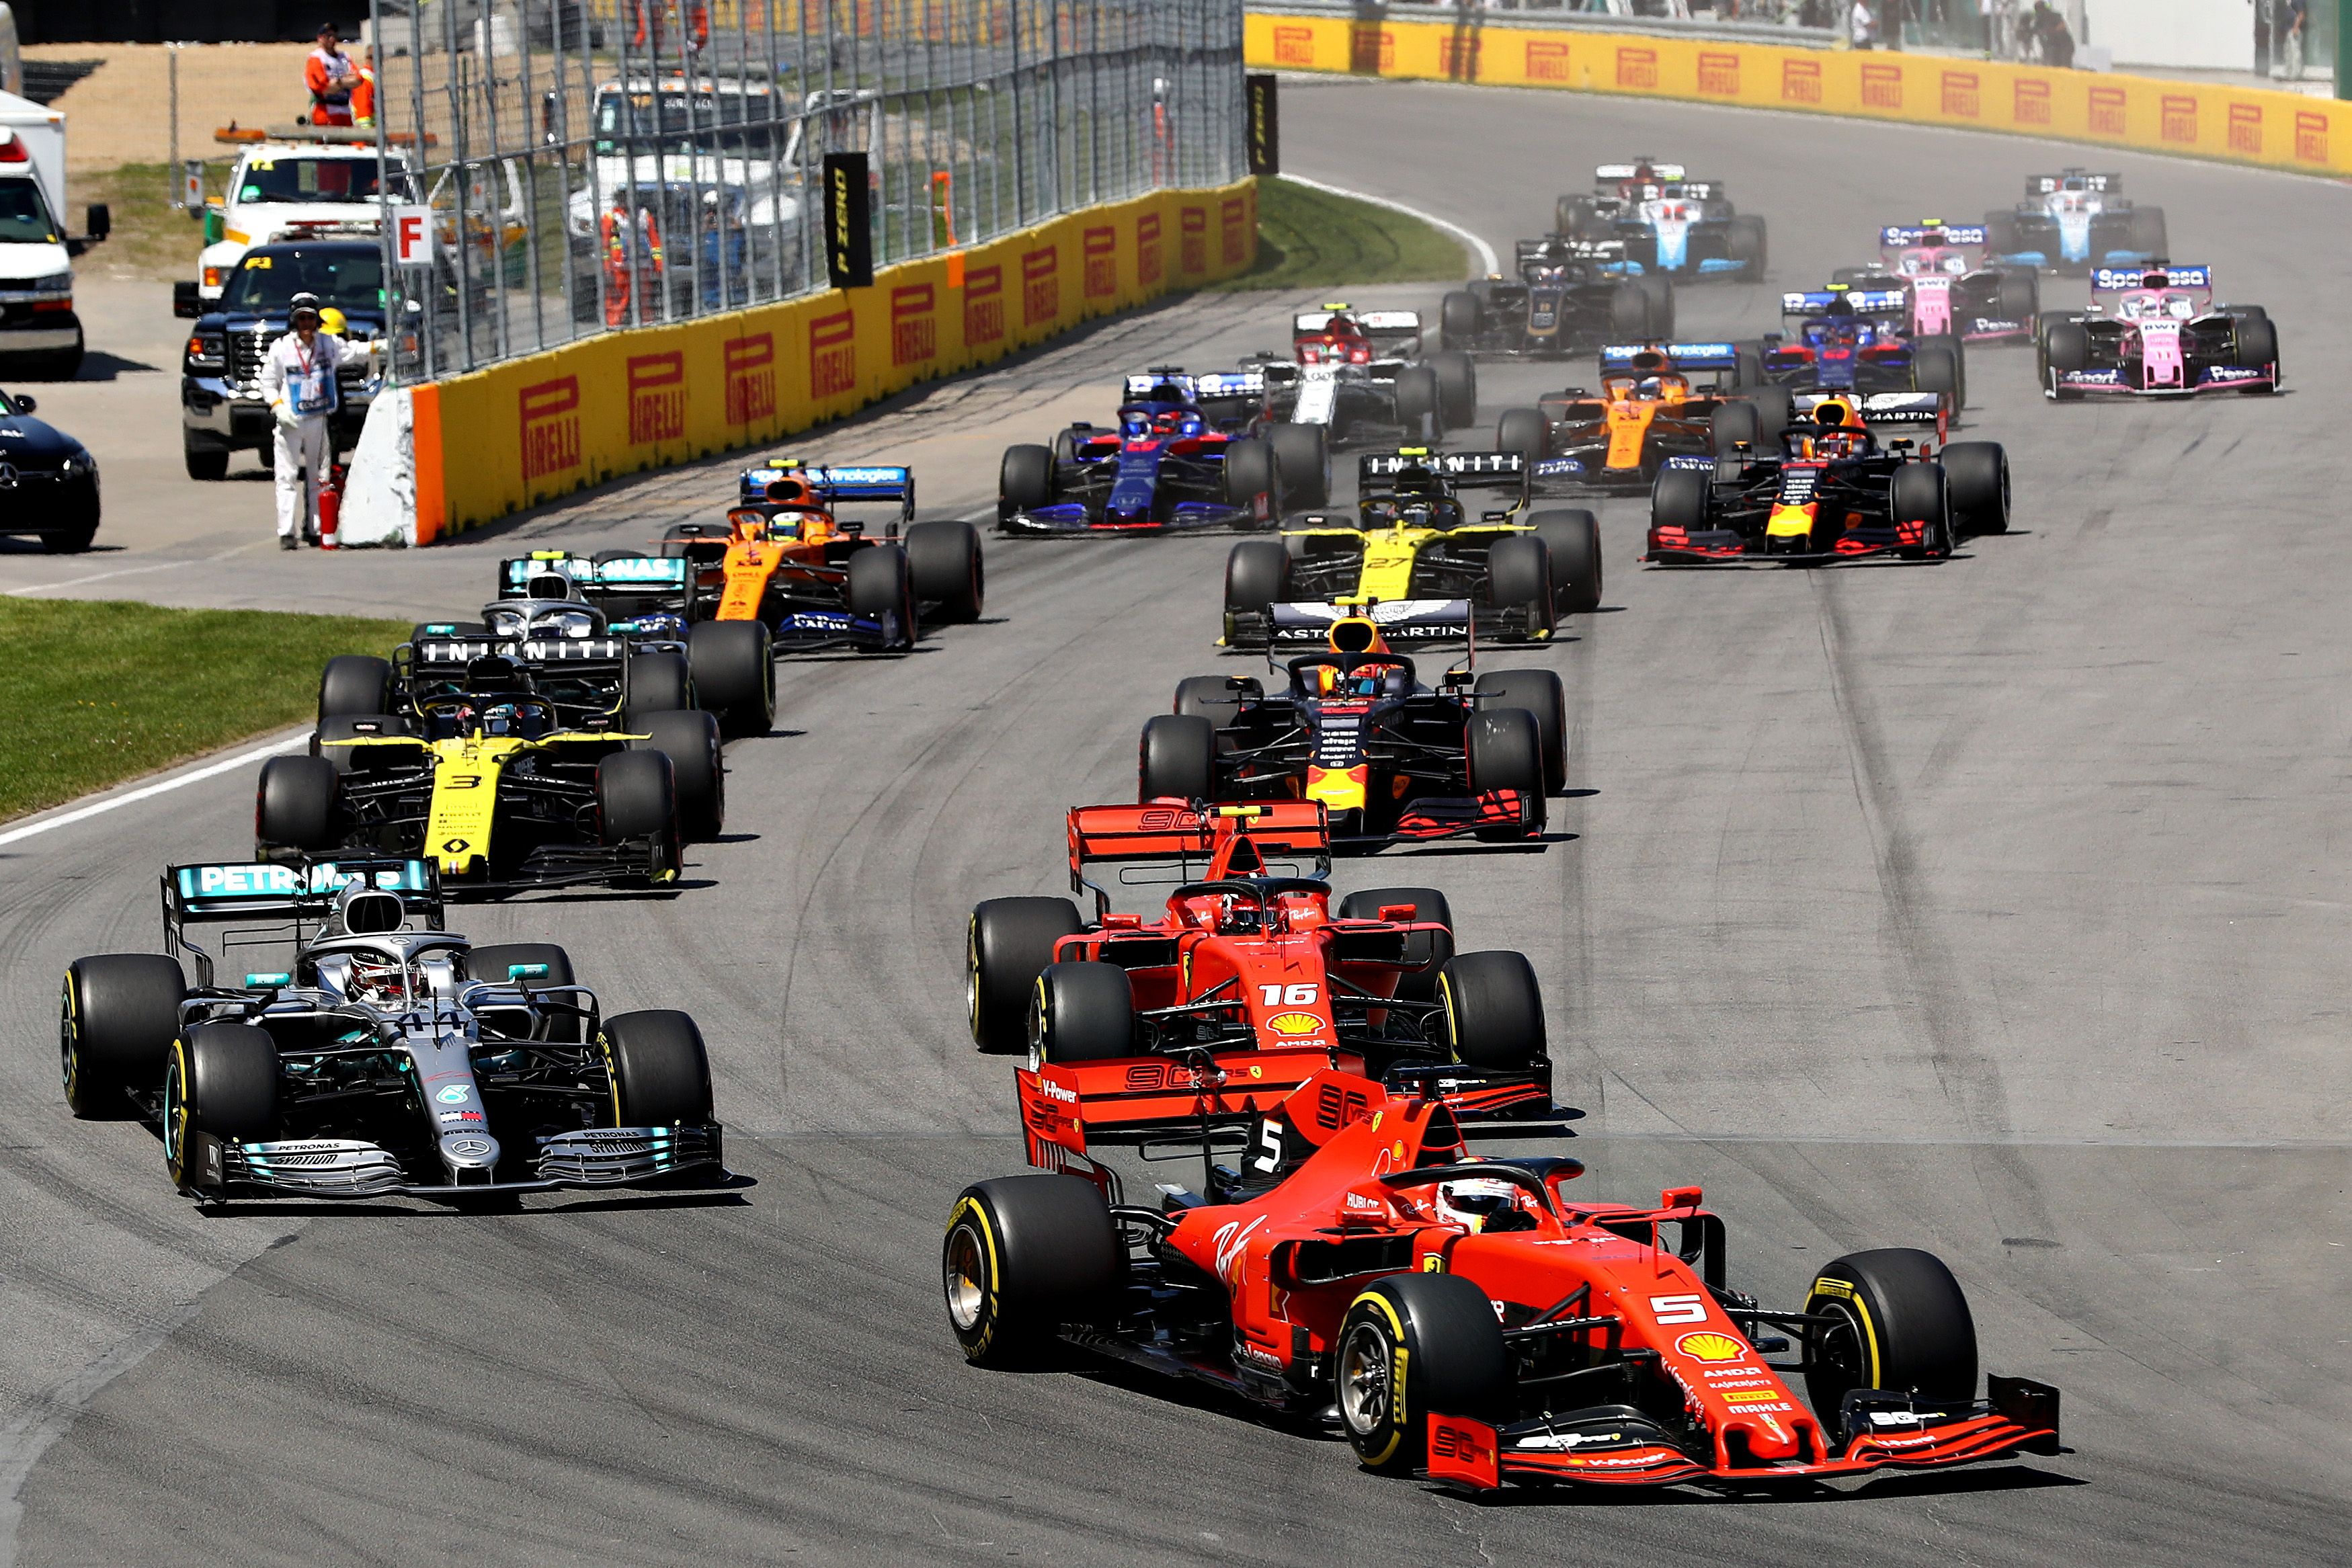 F1 Canadian Gp Promoter Throws Local Officials Under The Bus For Canceled Race